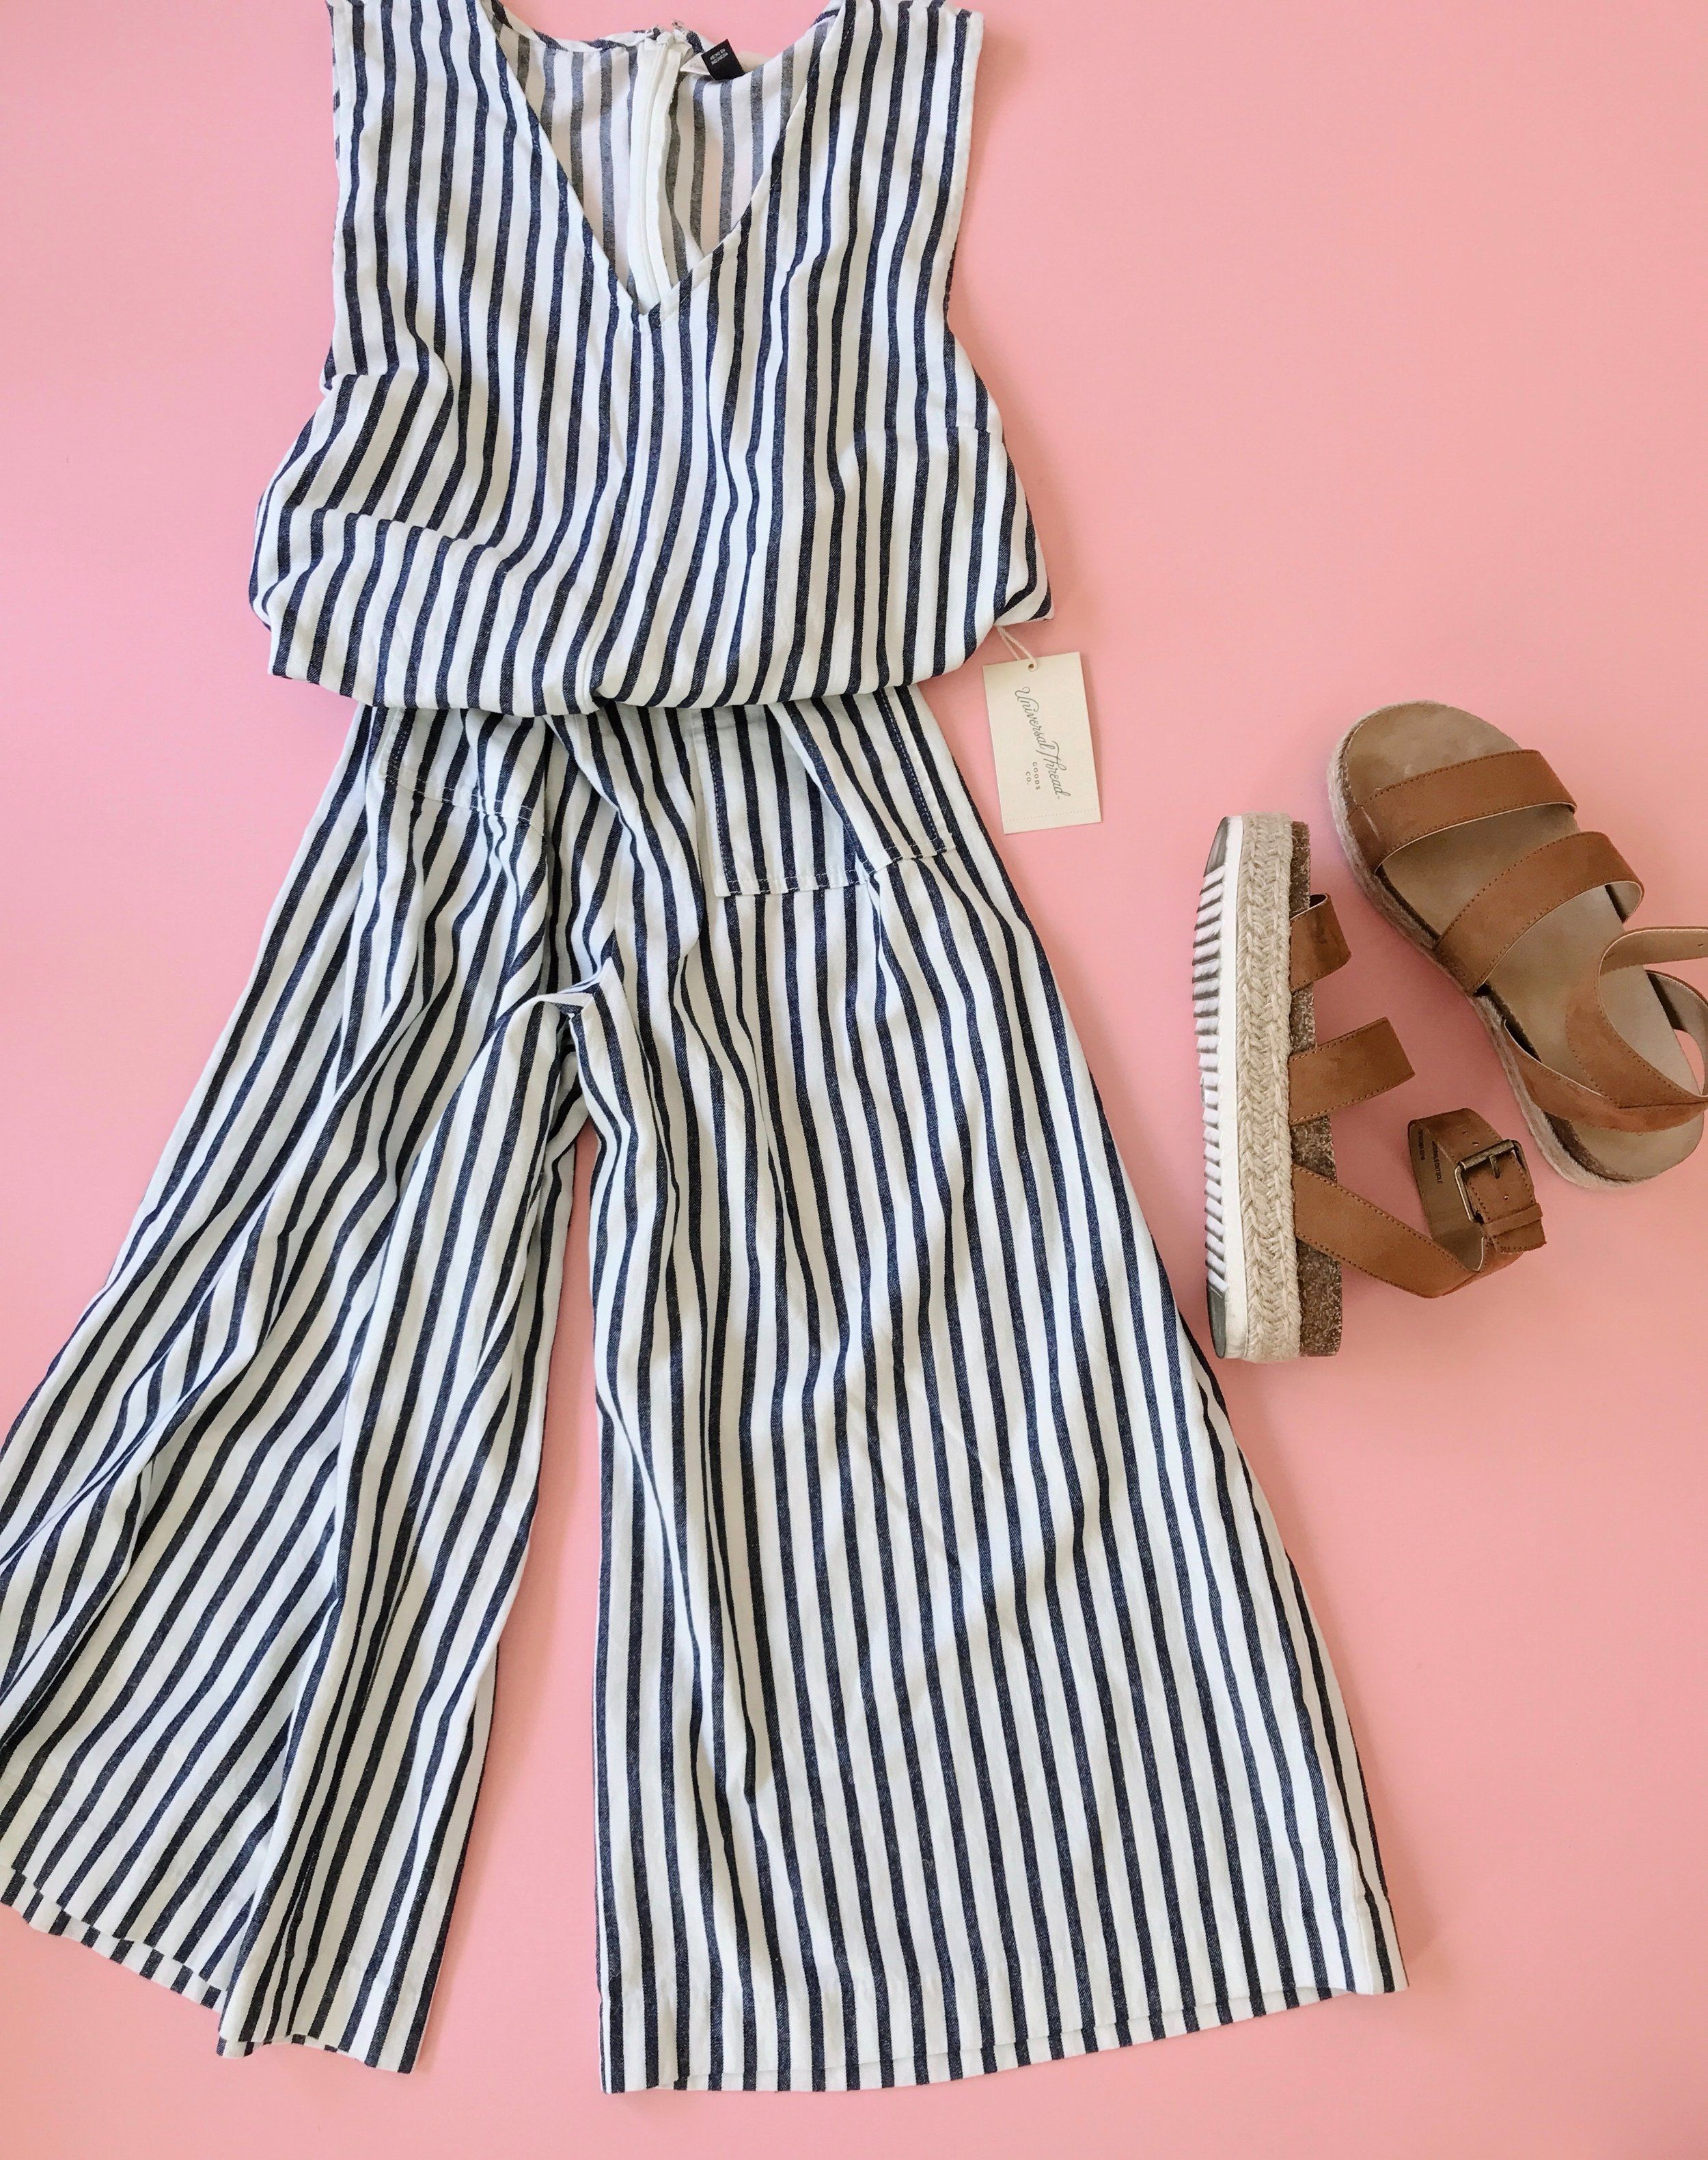 b7e3c04e1d9 Target Line Universal Threads Striped Jumpsuit and faux leather platform  sandals on pink background